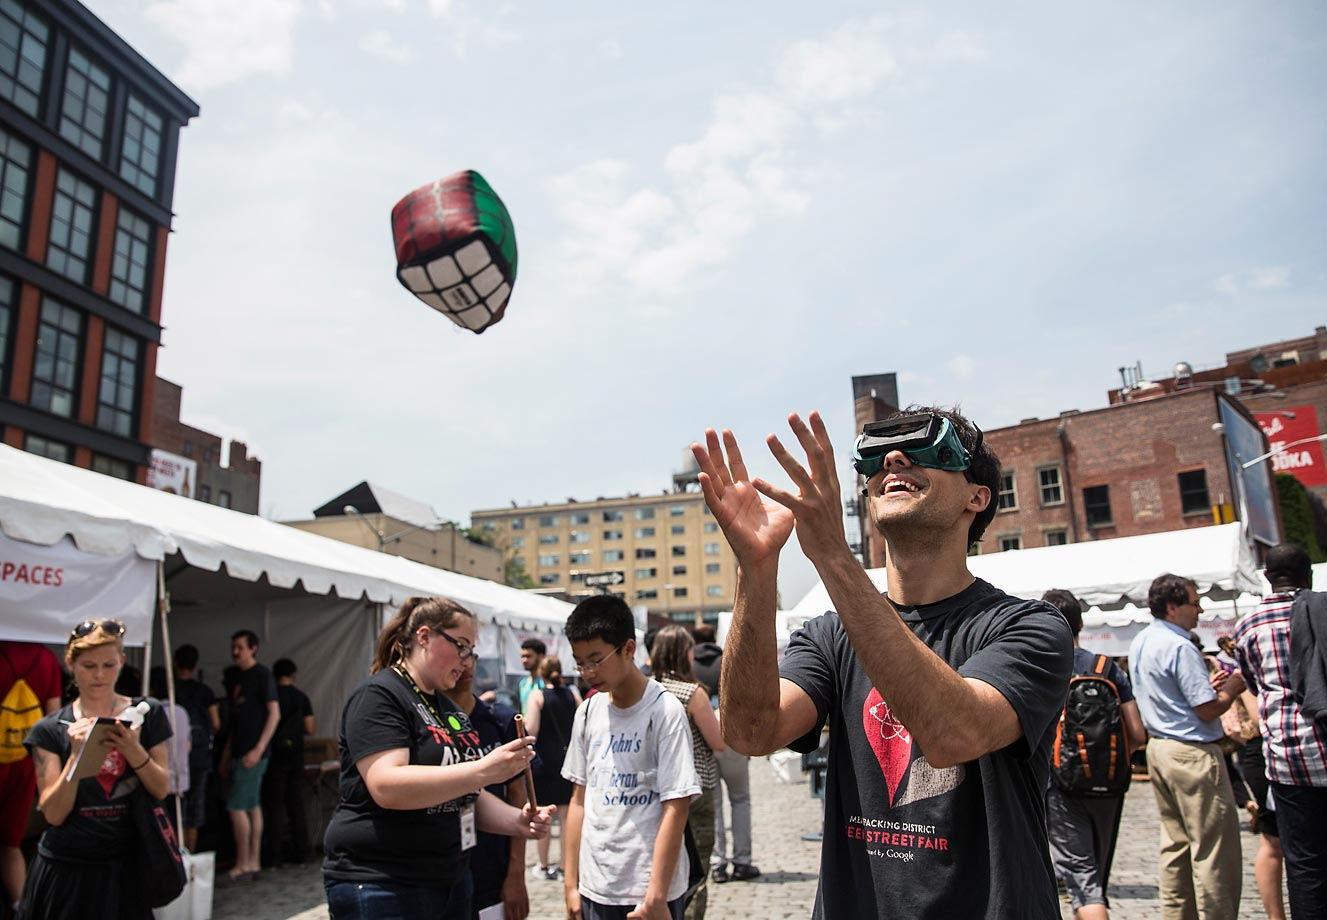 Michael Zaytsev attempts to catch a toy while wearing goggles that invert vision at Geek Street Fair in the Meat Packing District neighborhood of New York City.